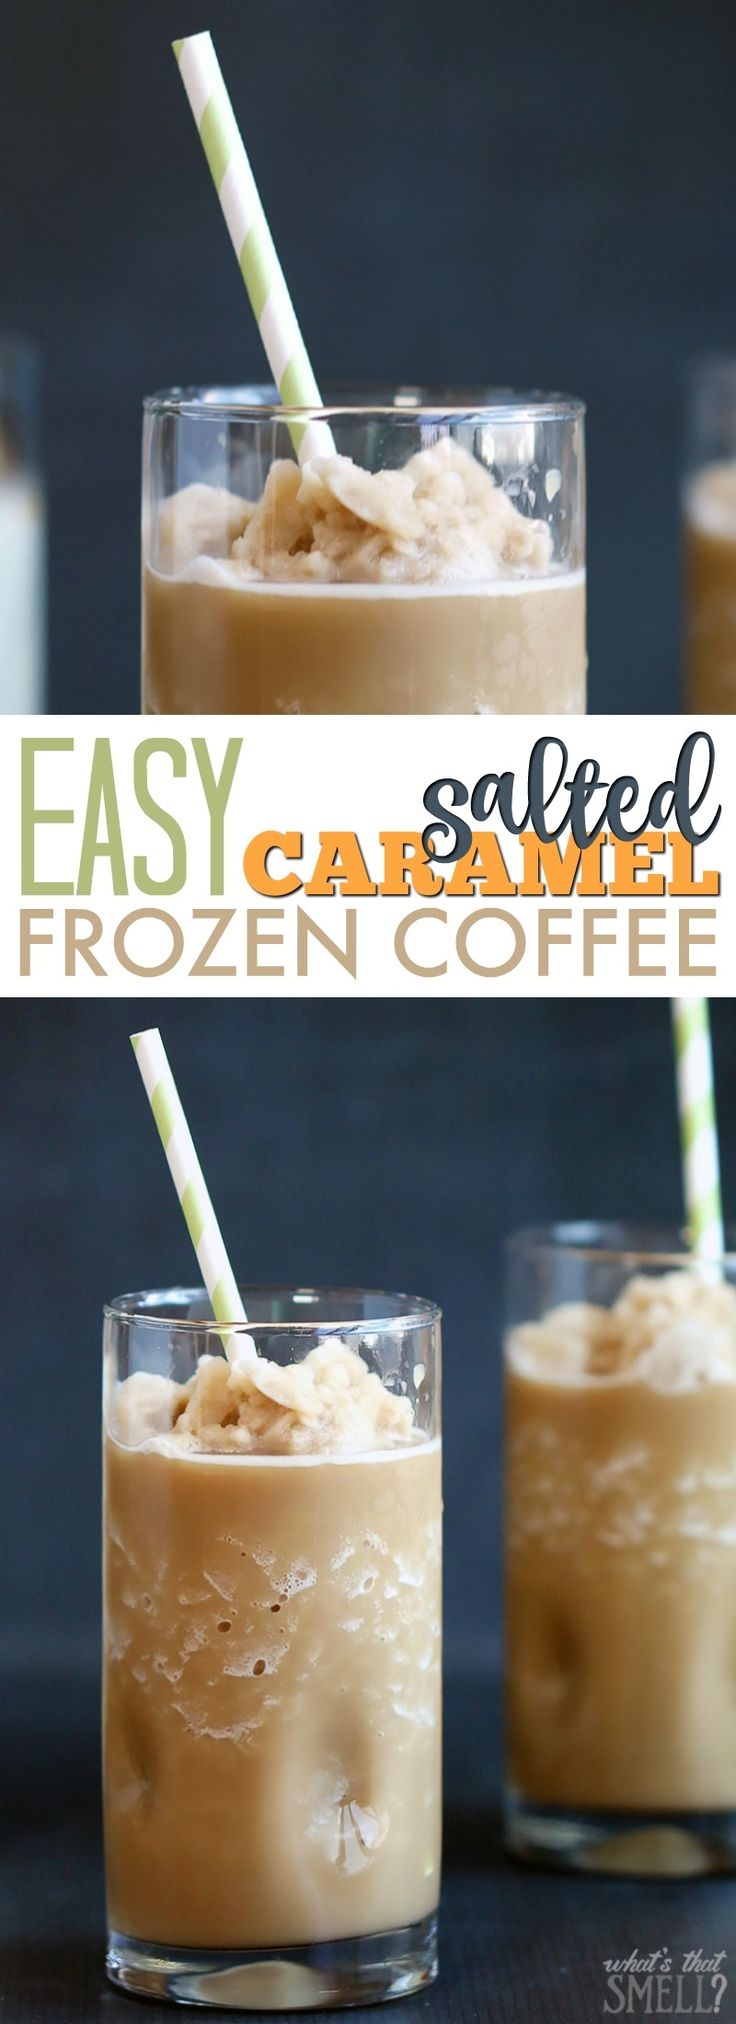 Best 25+ Frozen coffee drinks ideas on Pinterest | Frozen coffee ...